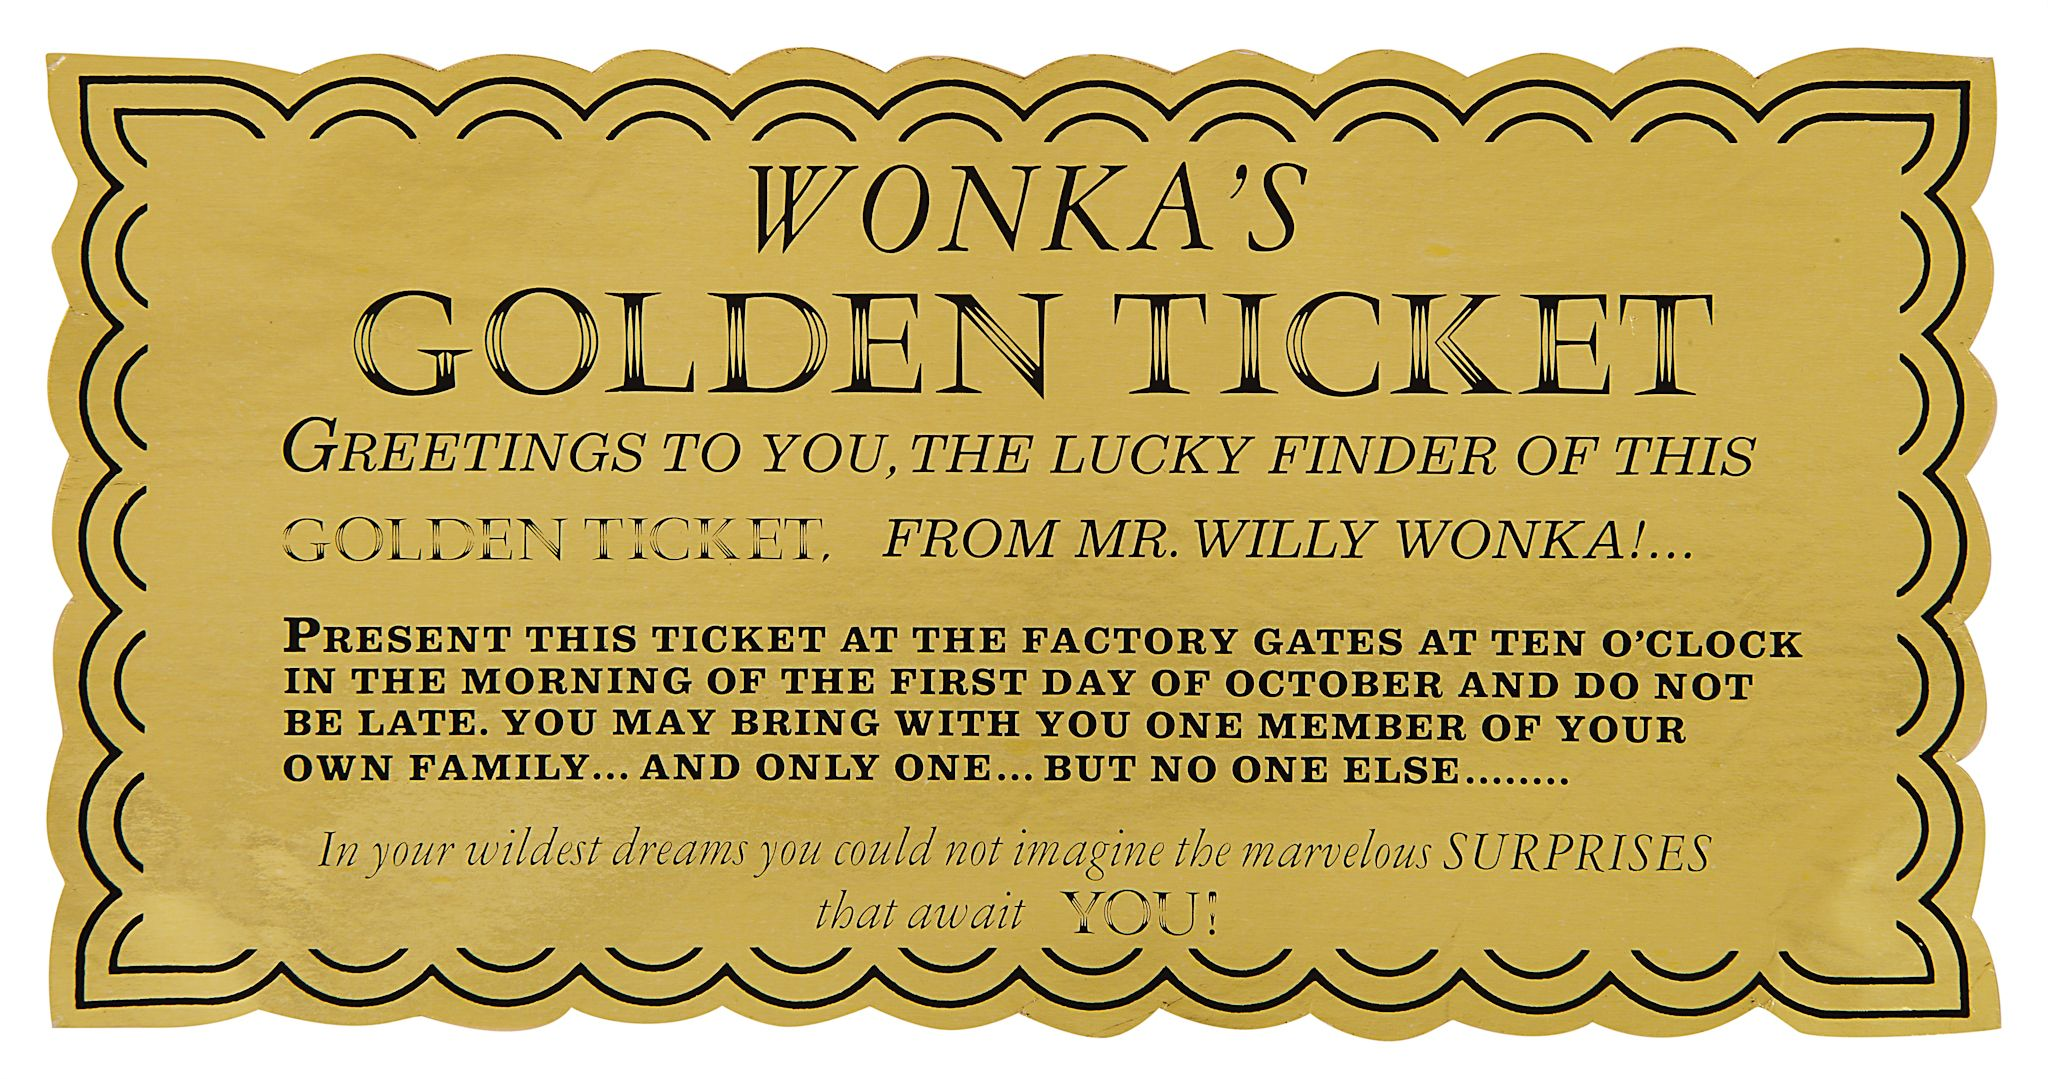 Authentic Golden Ticket From Willy Wonka And The Chocolate Factory